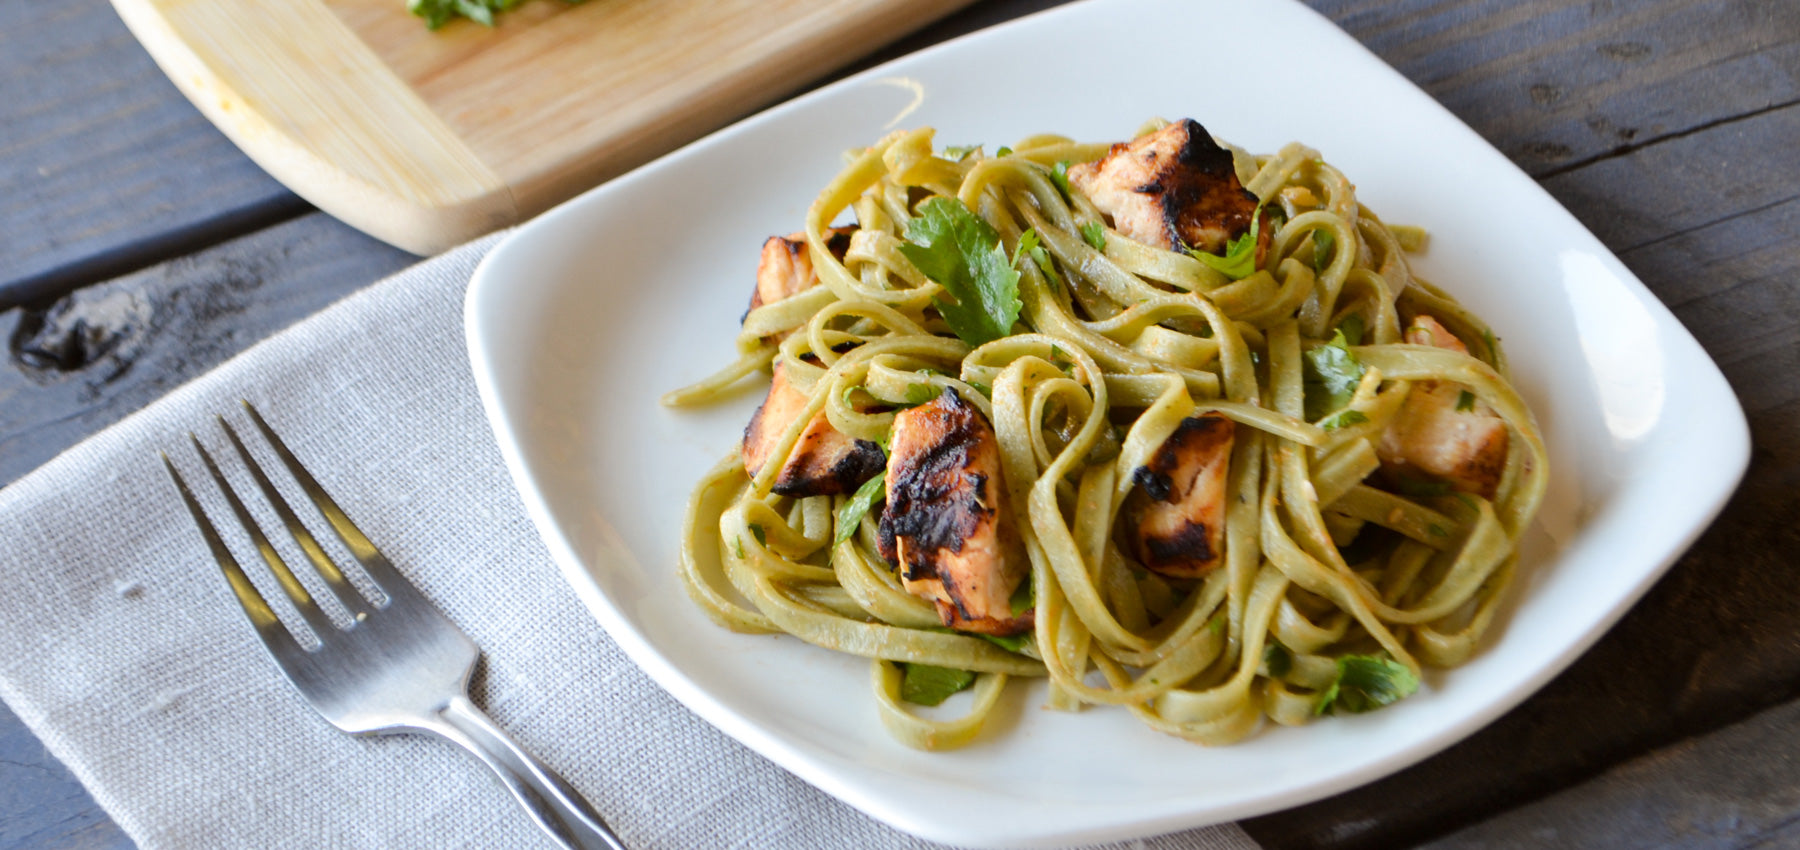 Lime Cilantro Linguine with Chicken in Citrus-Cilantro Sauce